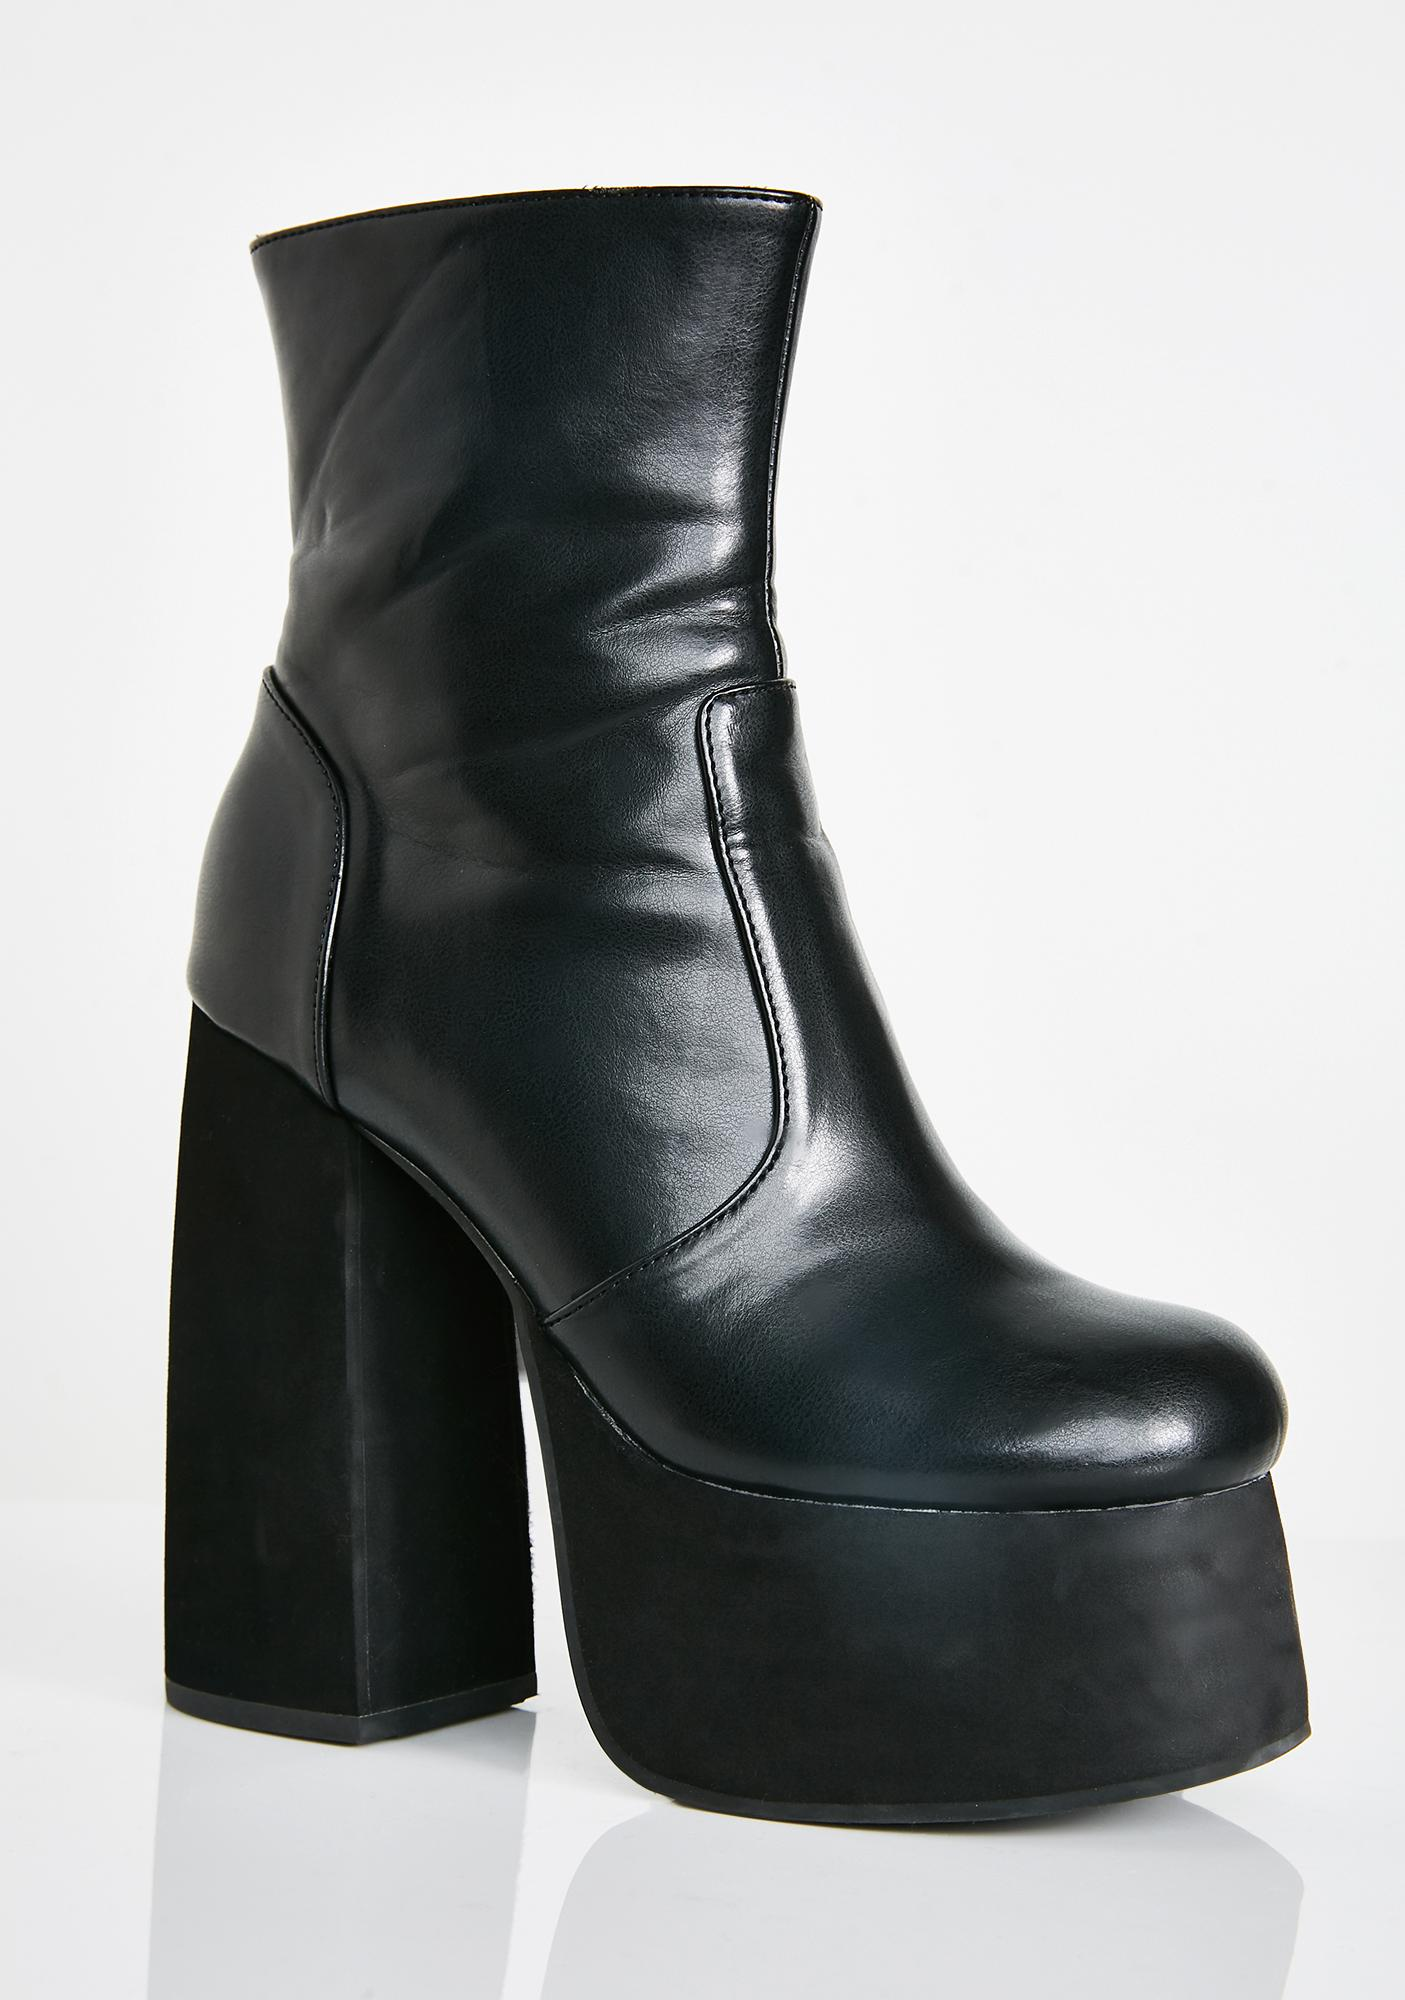 Current Mood Midnight Baddie Behavior Platform Boots